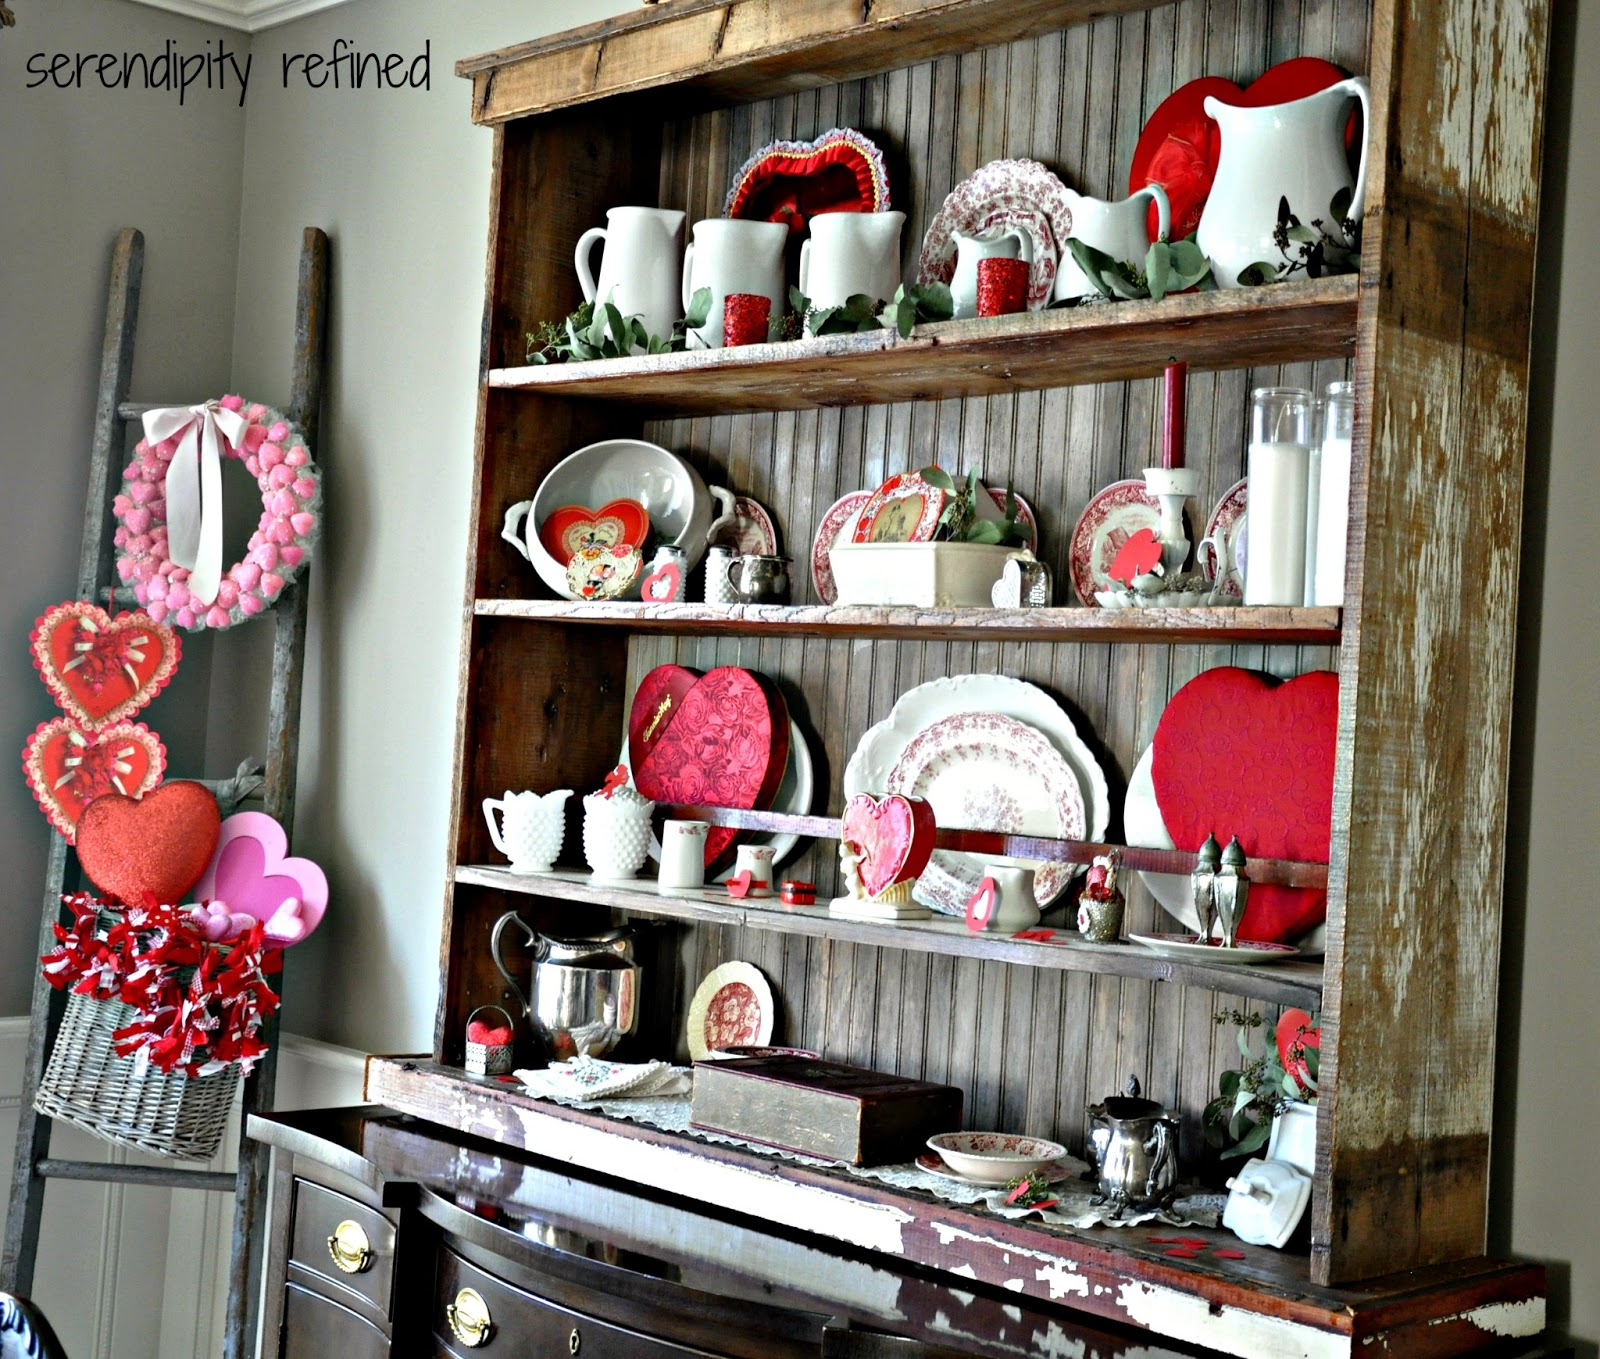 Vintage Decoration: Serendipity Refined Blog: Vintage Valentine's Day Dining